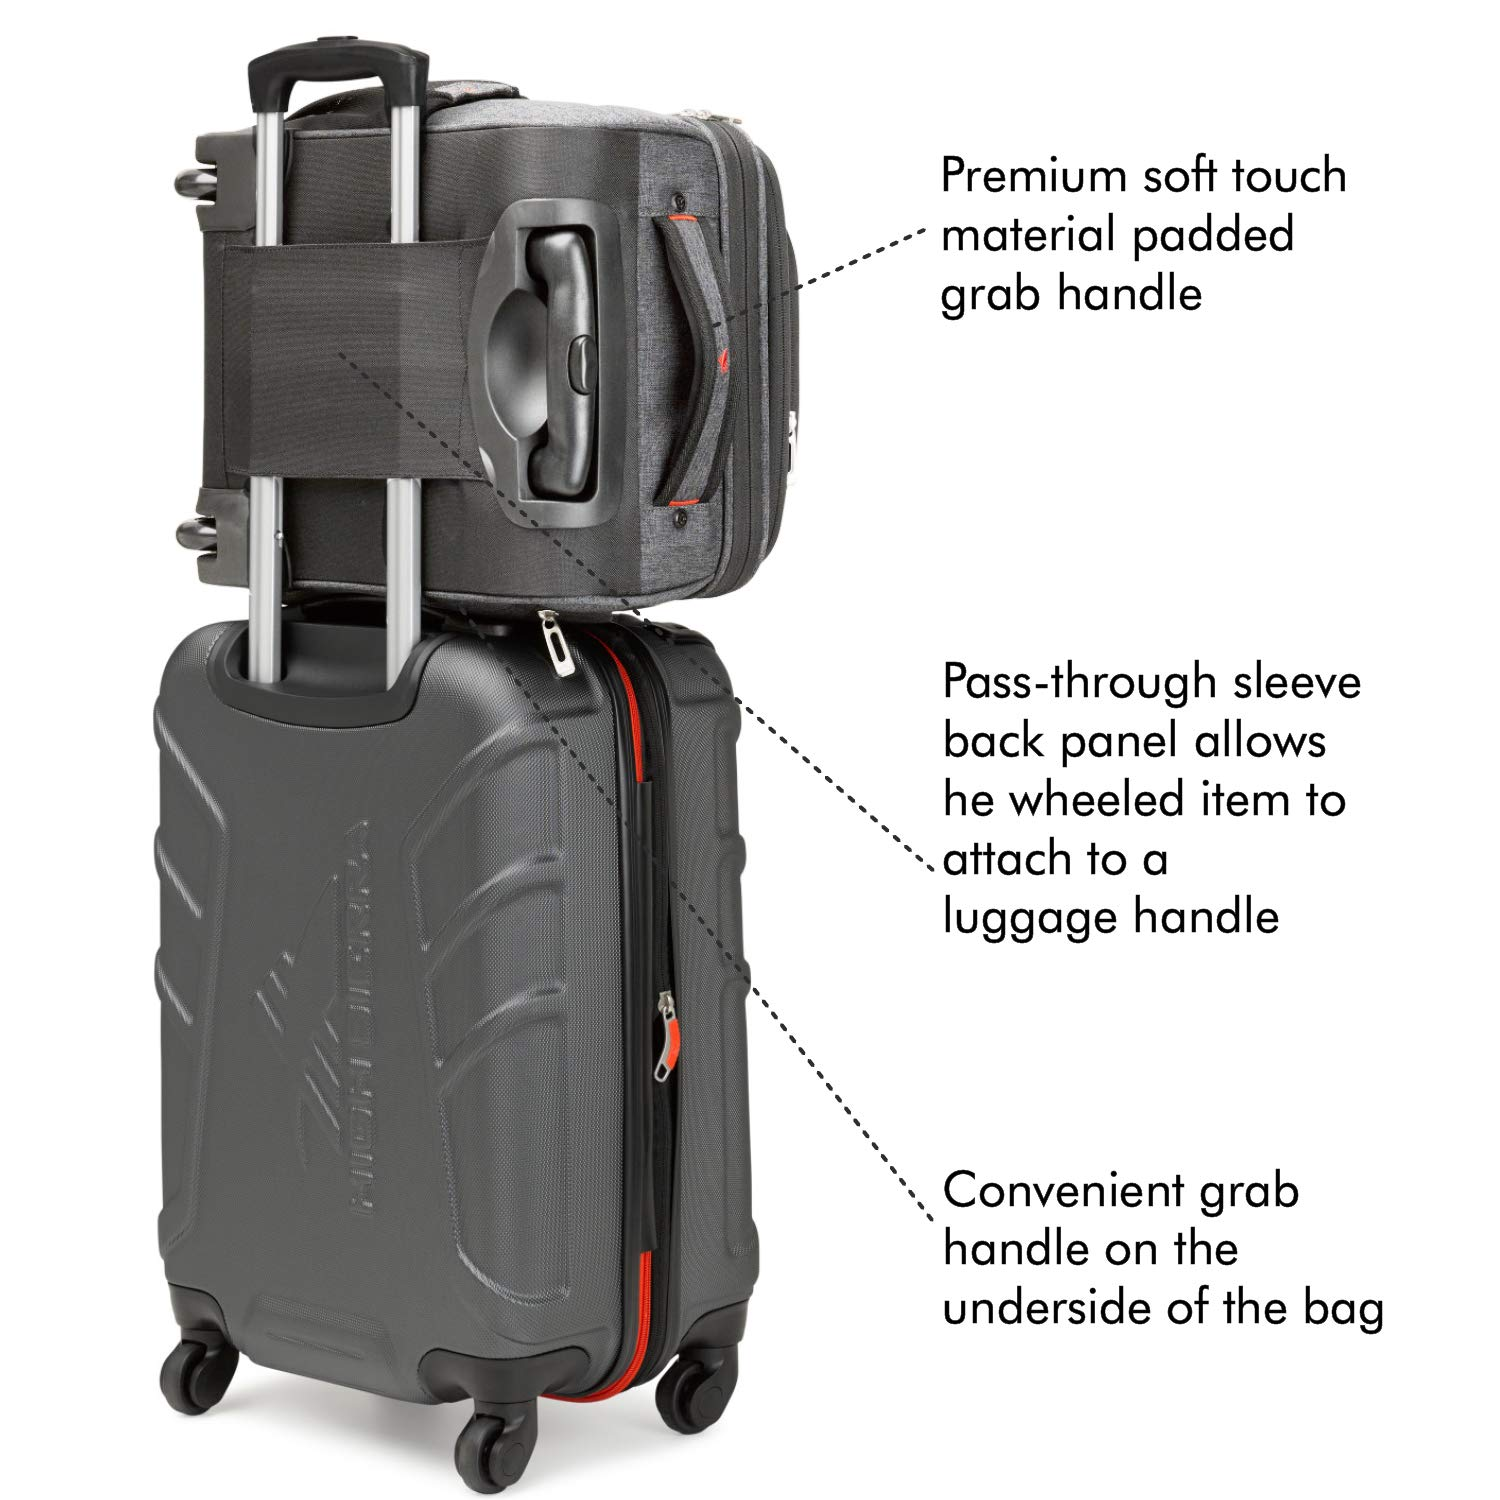 Wheeled Laptop Bag Carry-on High Sierra Endeavor Wheeled Underseat Carry-On Travelon Underseat Luggage with Wheels Underseat Wheeled Bag with Pass-Through Sleeve Perfect for Business Travelers